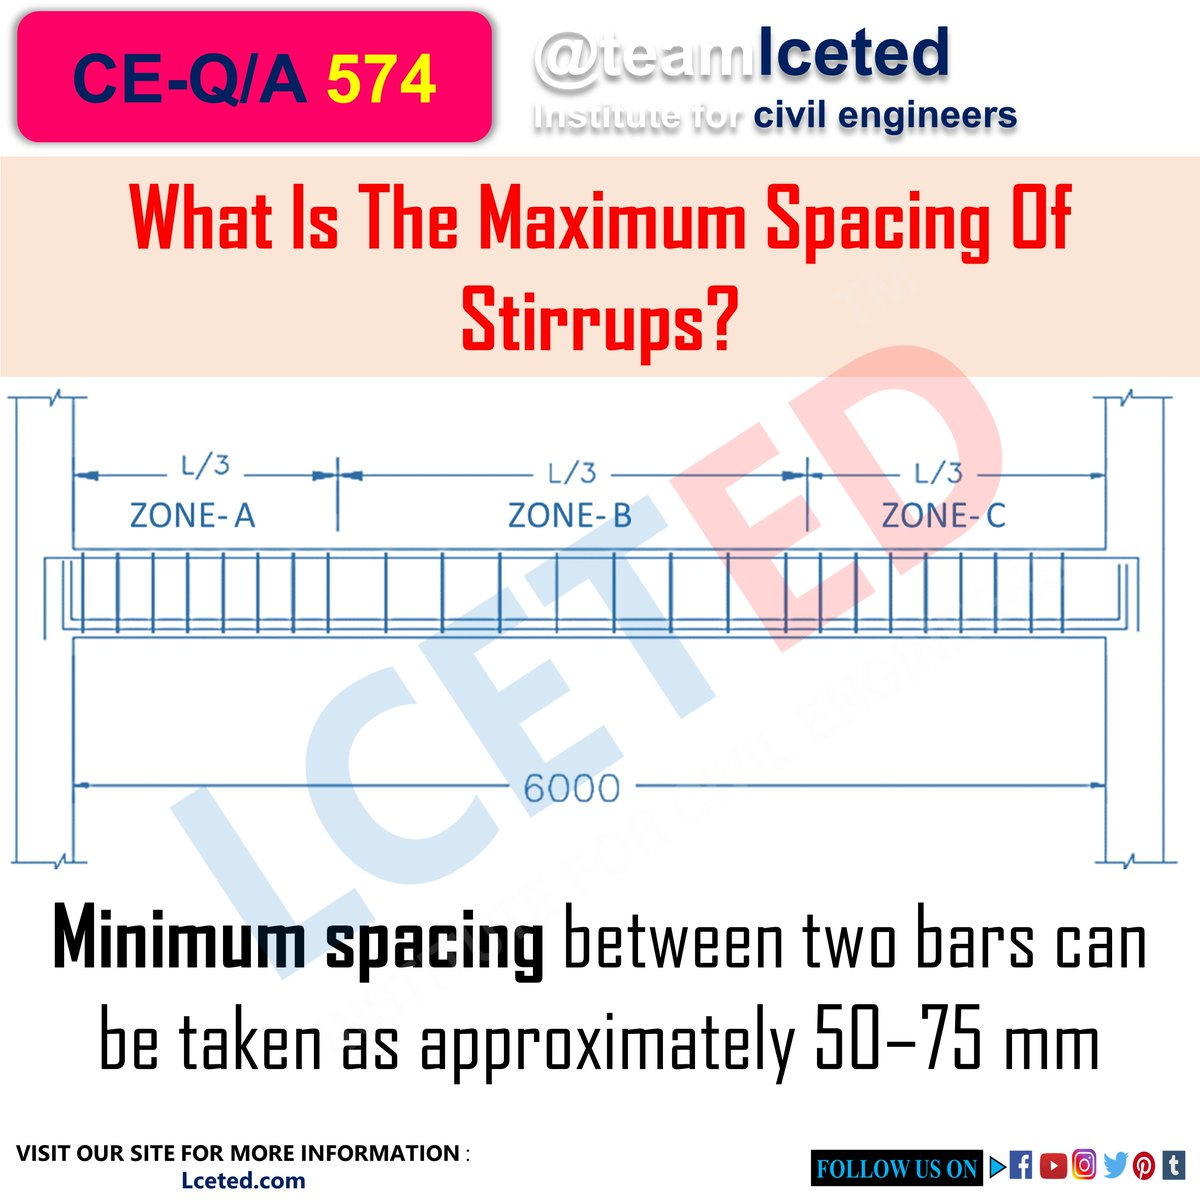 CE-Q/A 574: What Is The Maximum Spacing Of Stirrups?  Follow @teamlceted  for more post related to #constructions Tag your #civilengineer friends #engnieers #lceted #engineer #India #brazil #russia #germany #canada #malaysia #chennai #TamilNadu #Delhi https://t.co/DBzMvsWHY9